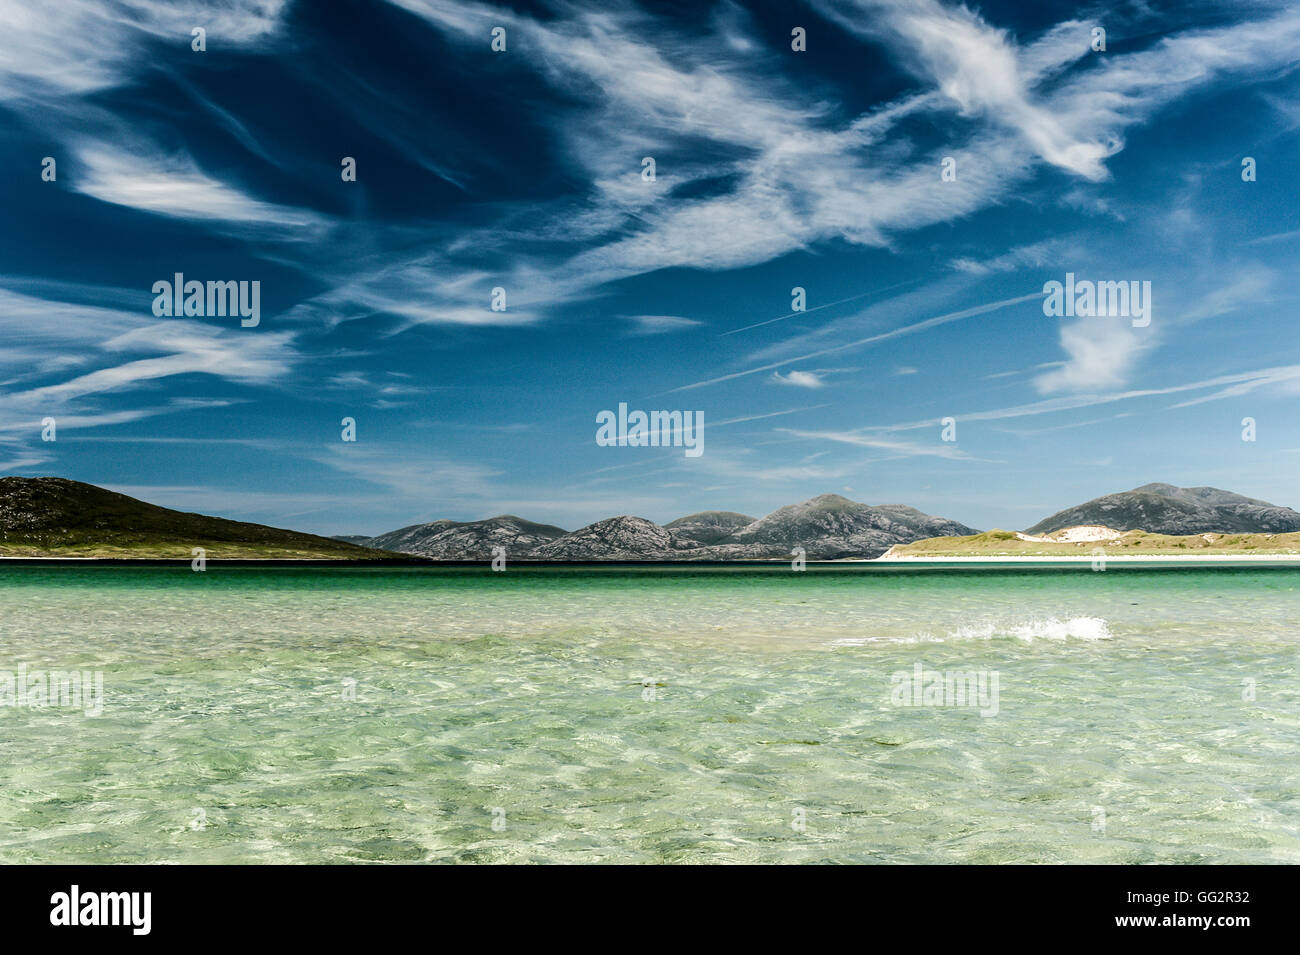 Luskentyre beach, Harris, Outer Hebrides. Scotland, island, beach, sky - Stock Image